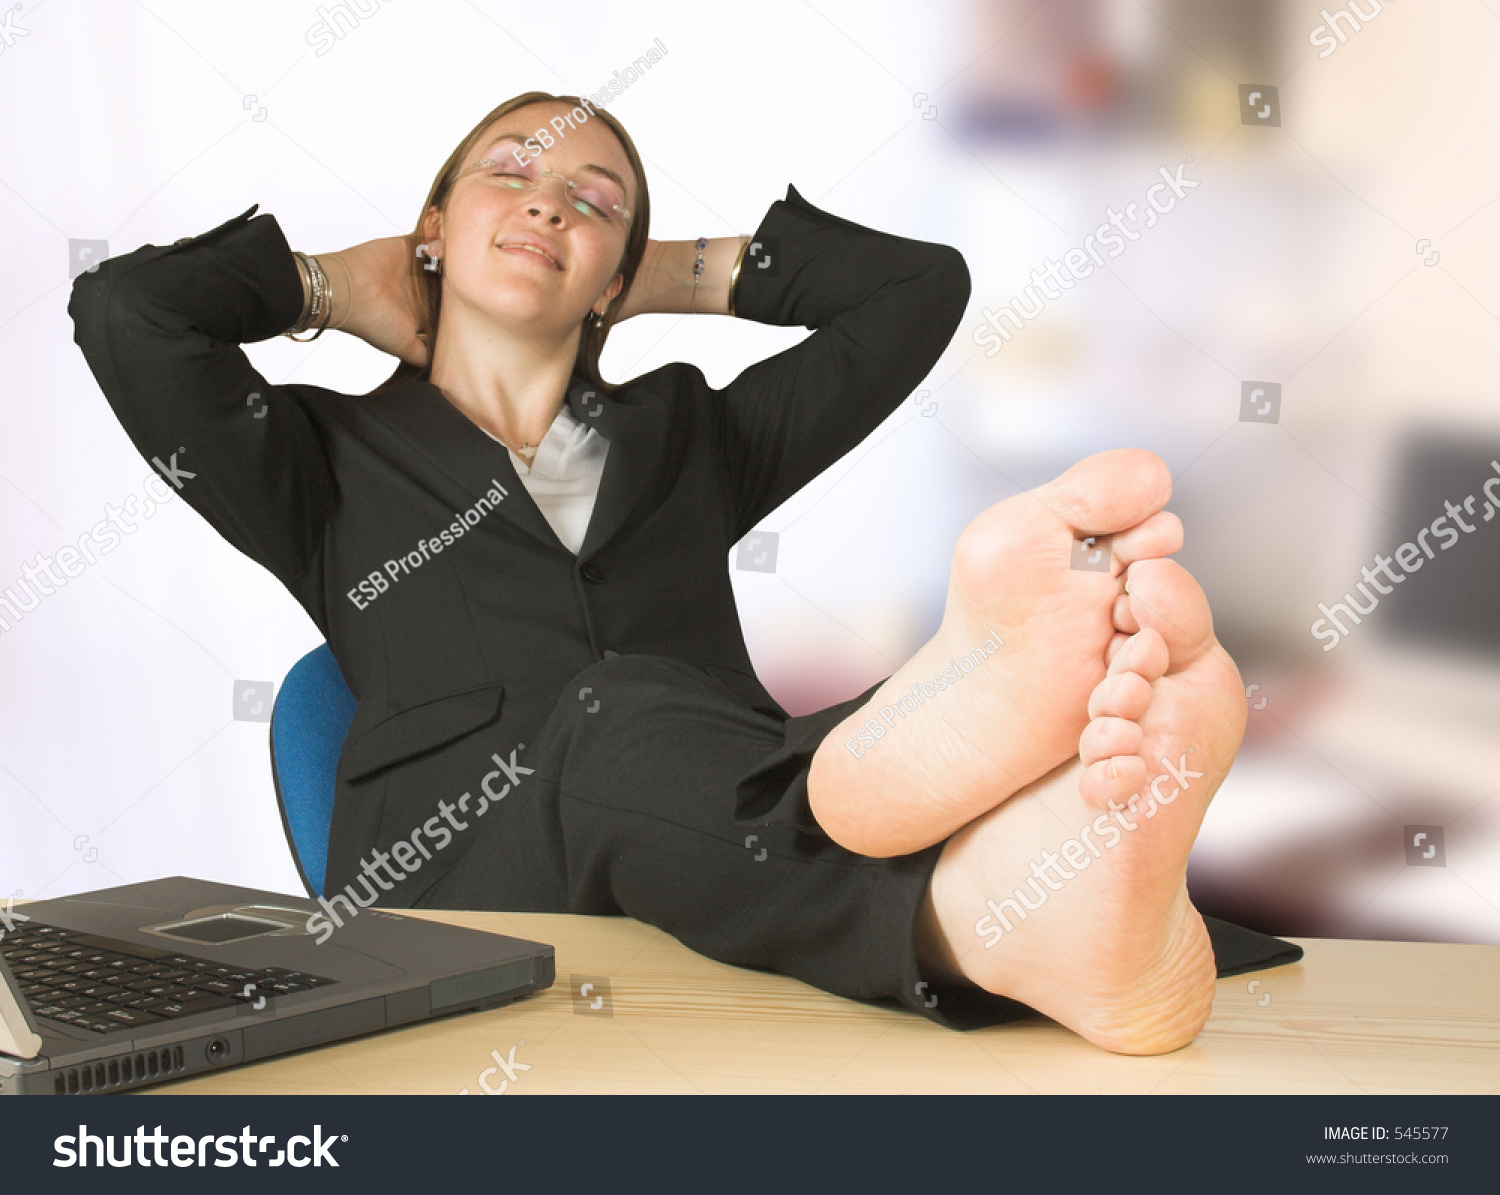 Business Woman Her Feet Office Stock Photo 545577